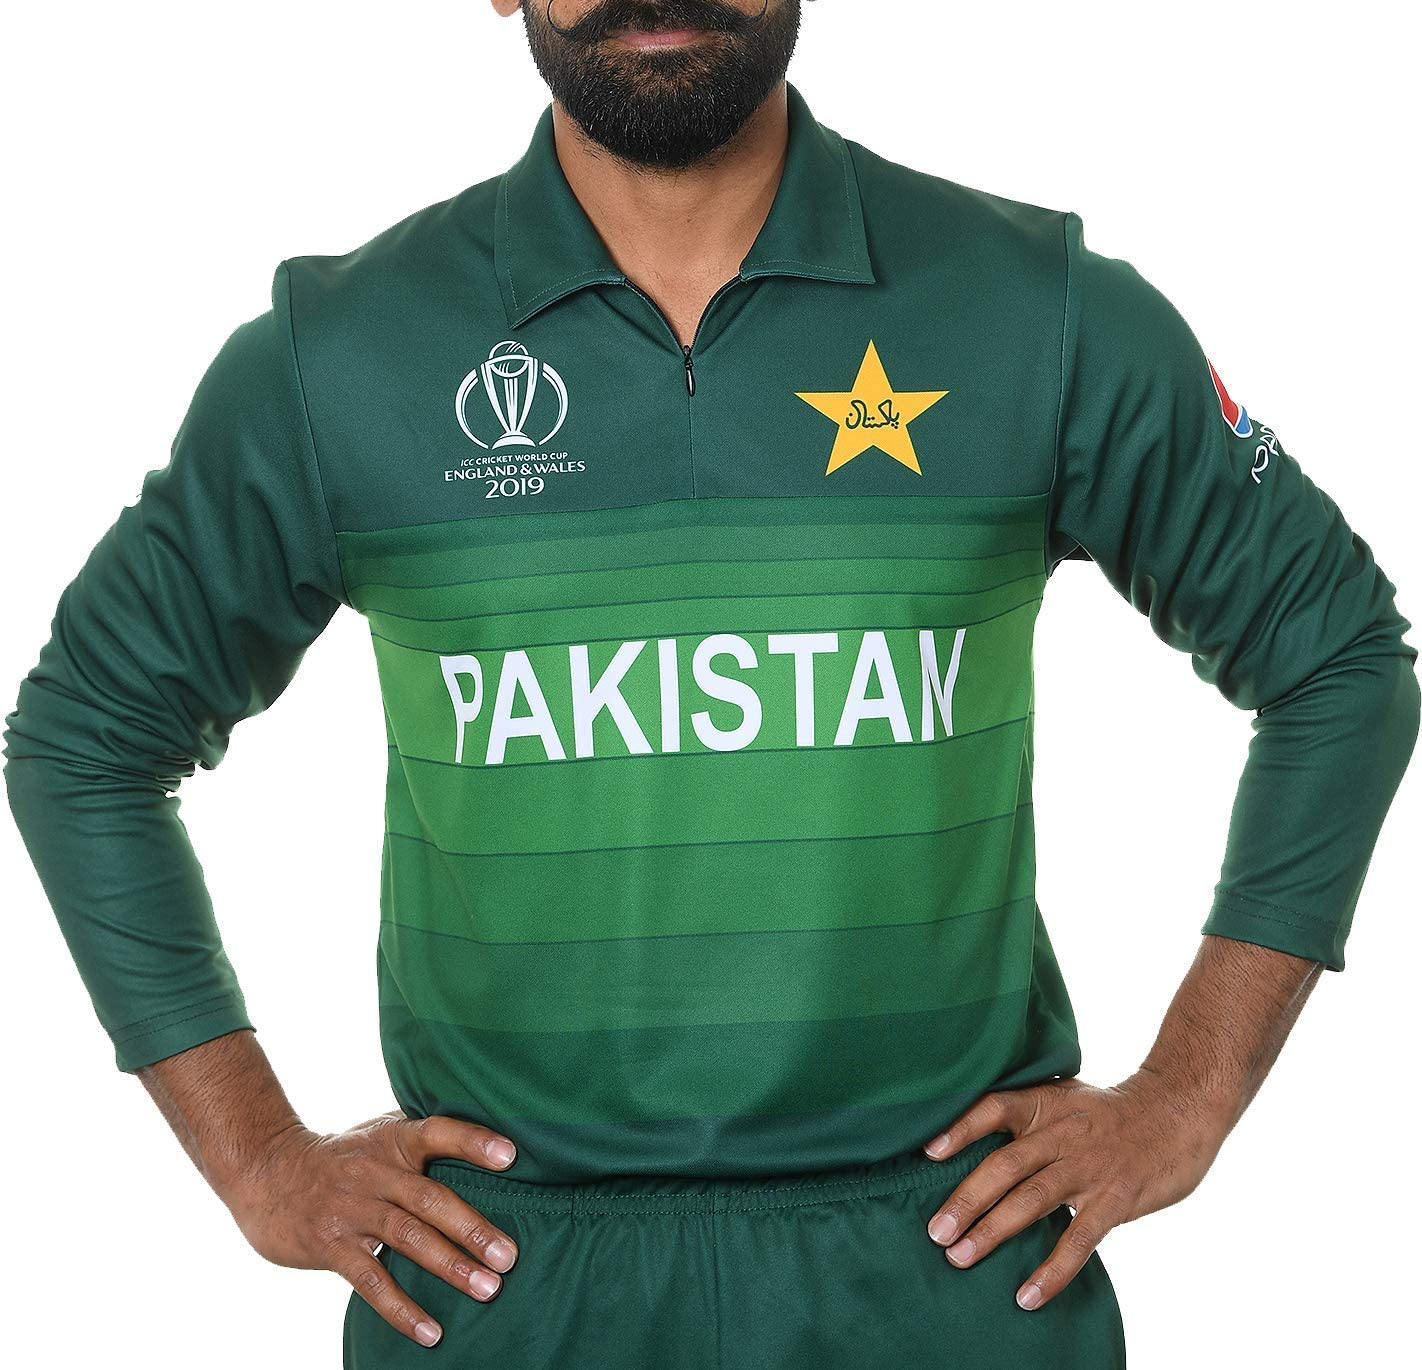 AJ Sports 2019 ICC Official Pakistan ODI Cricket World Cup Jersey Shirt Limited Edition UK